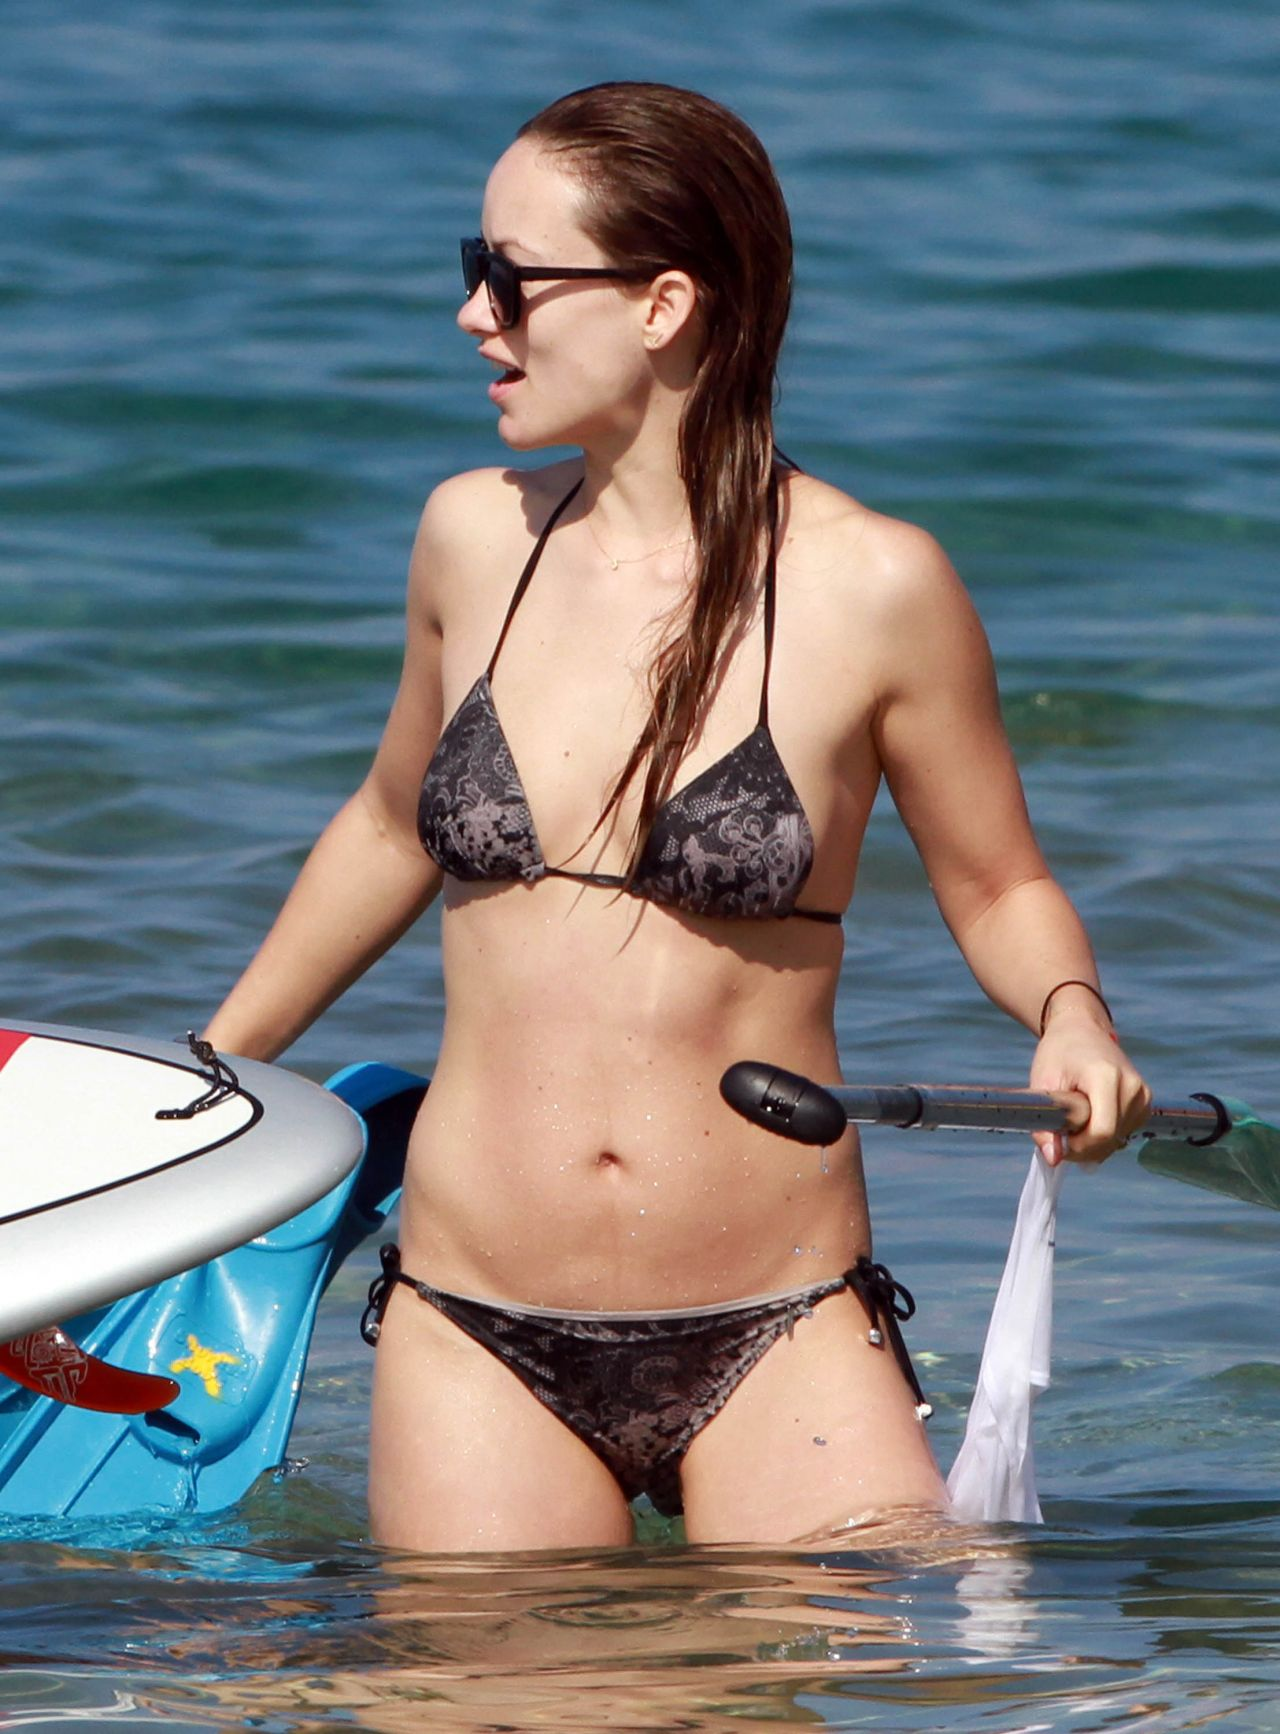 Olivia Wilde Bikini Pictures At A Beach In Maui